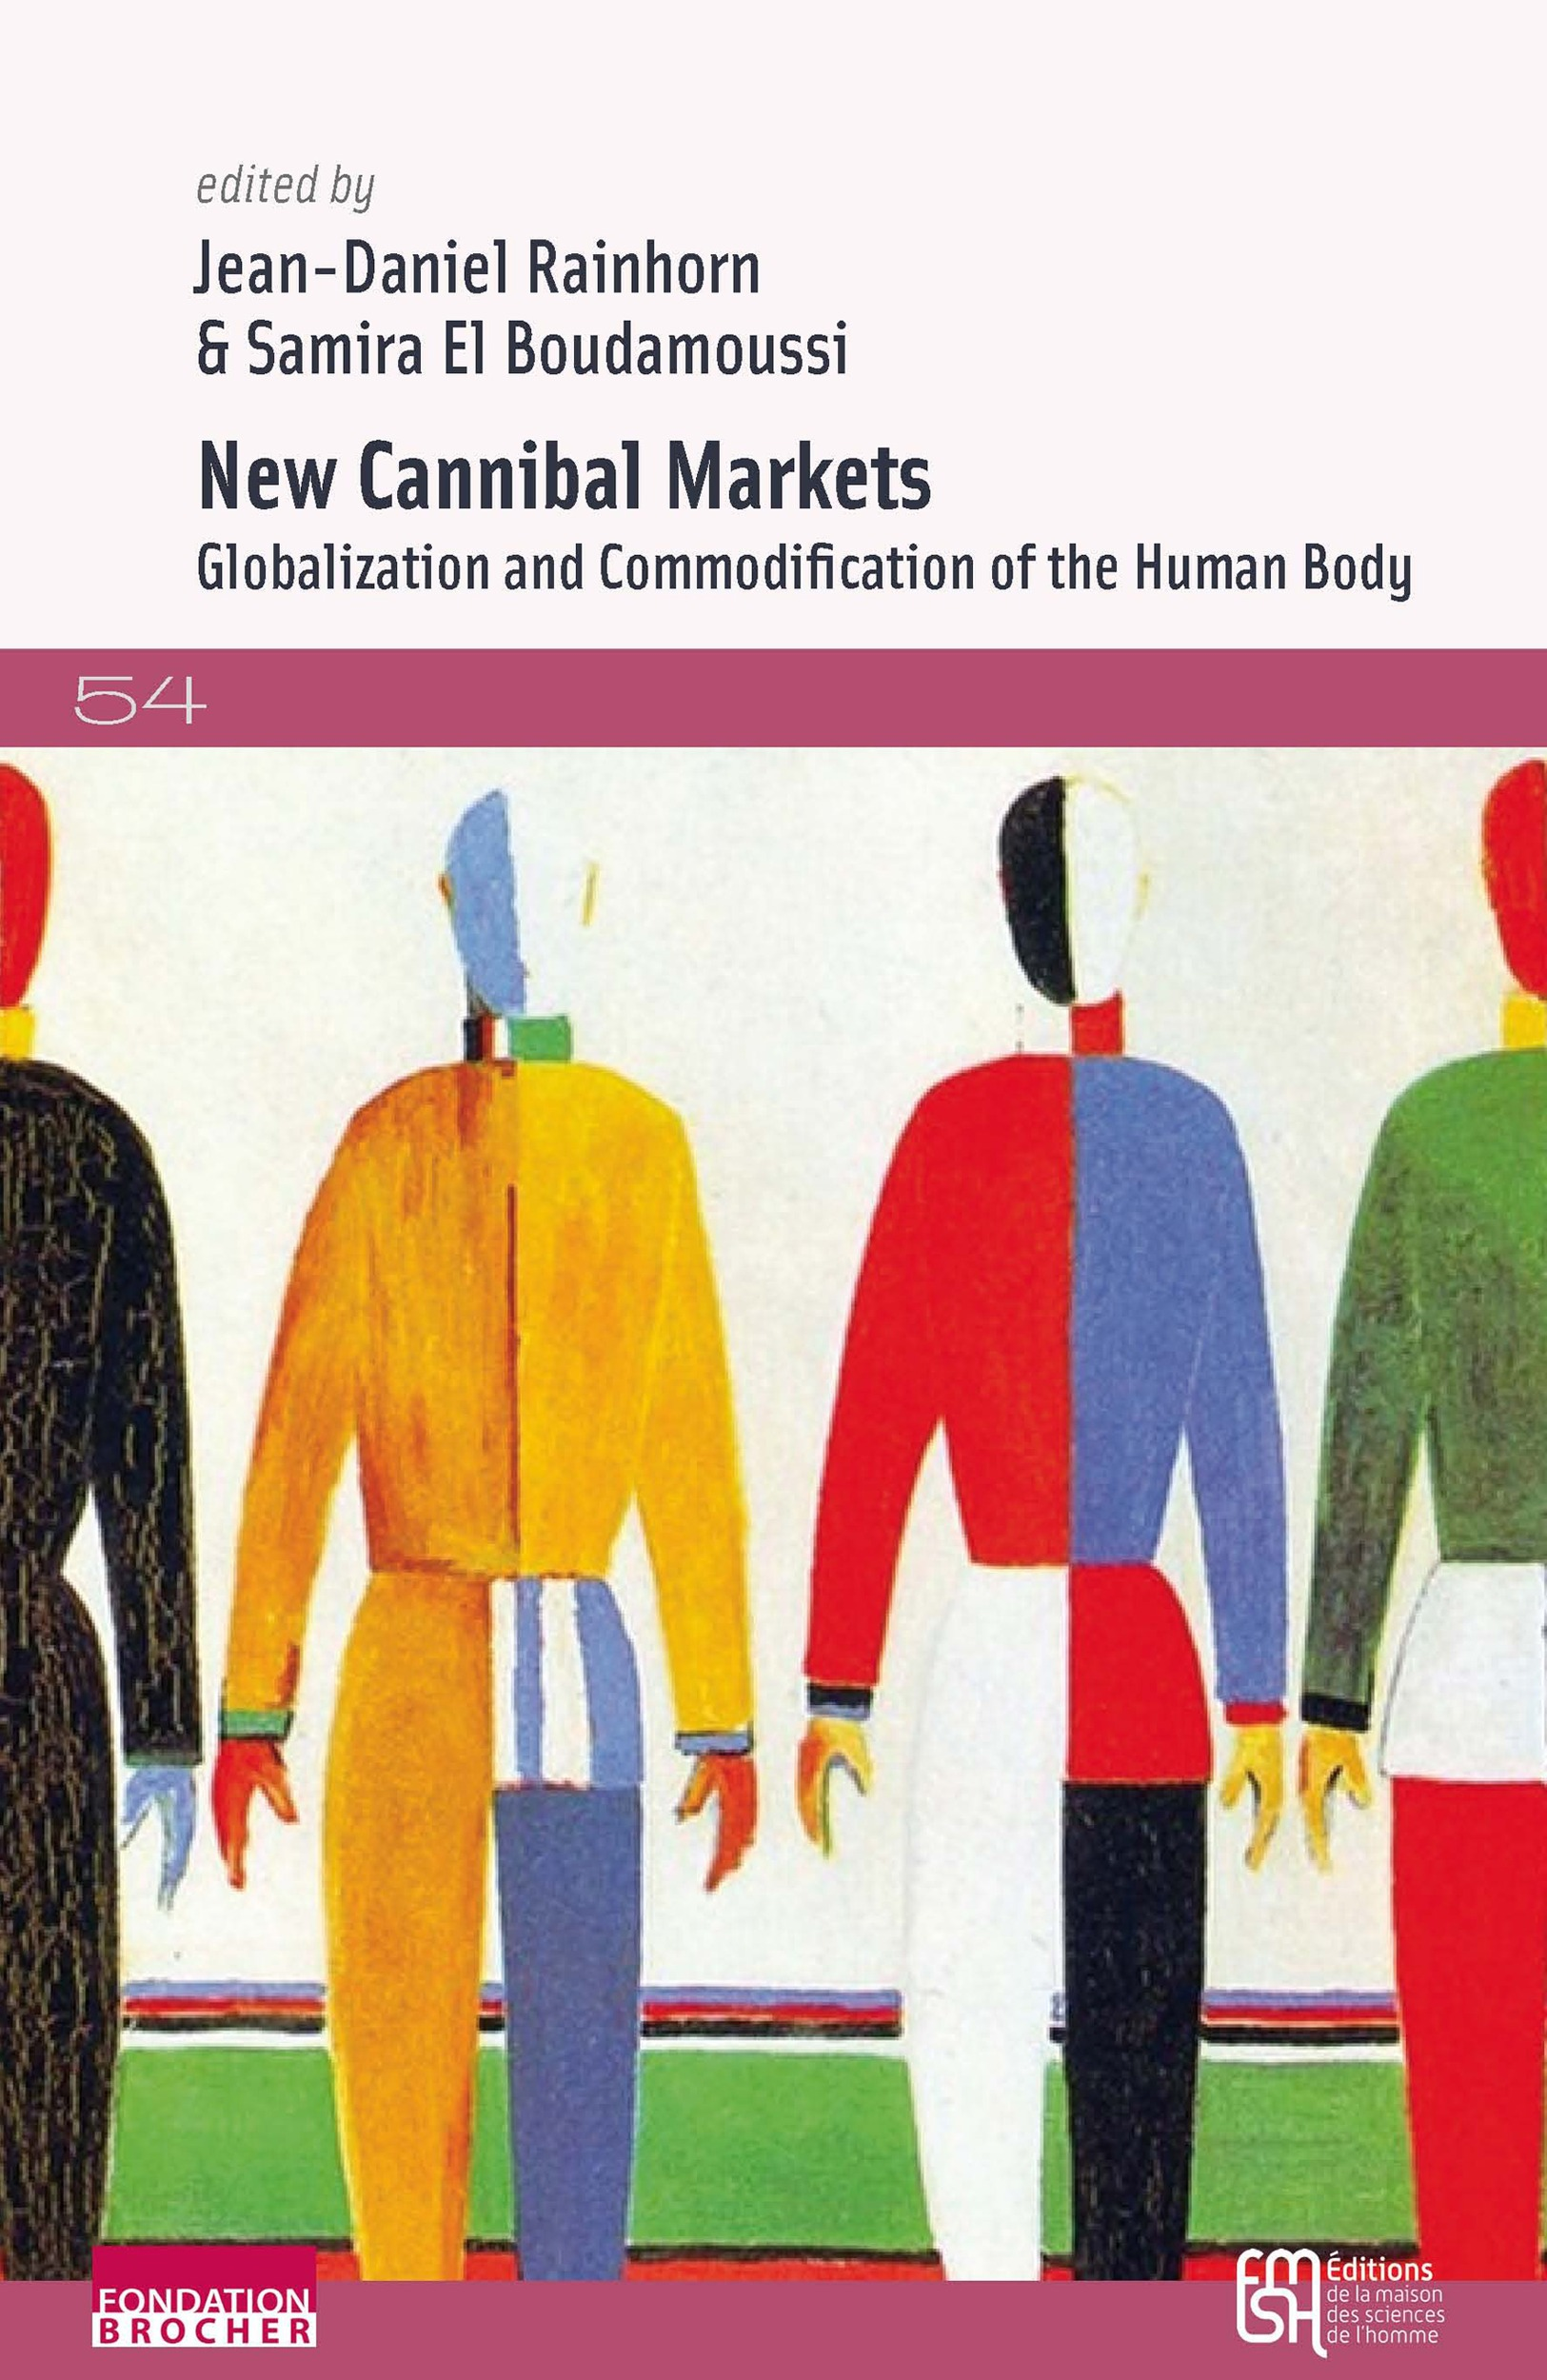 new cannibal markets ; globalization and commodification of the human body